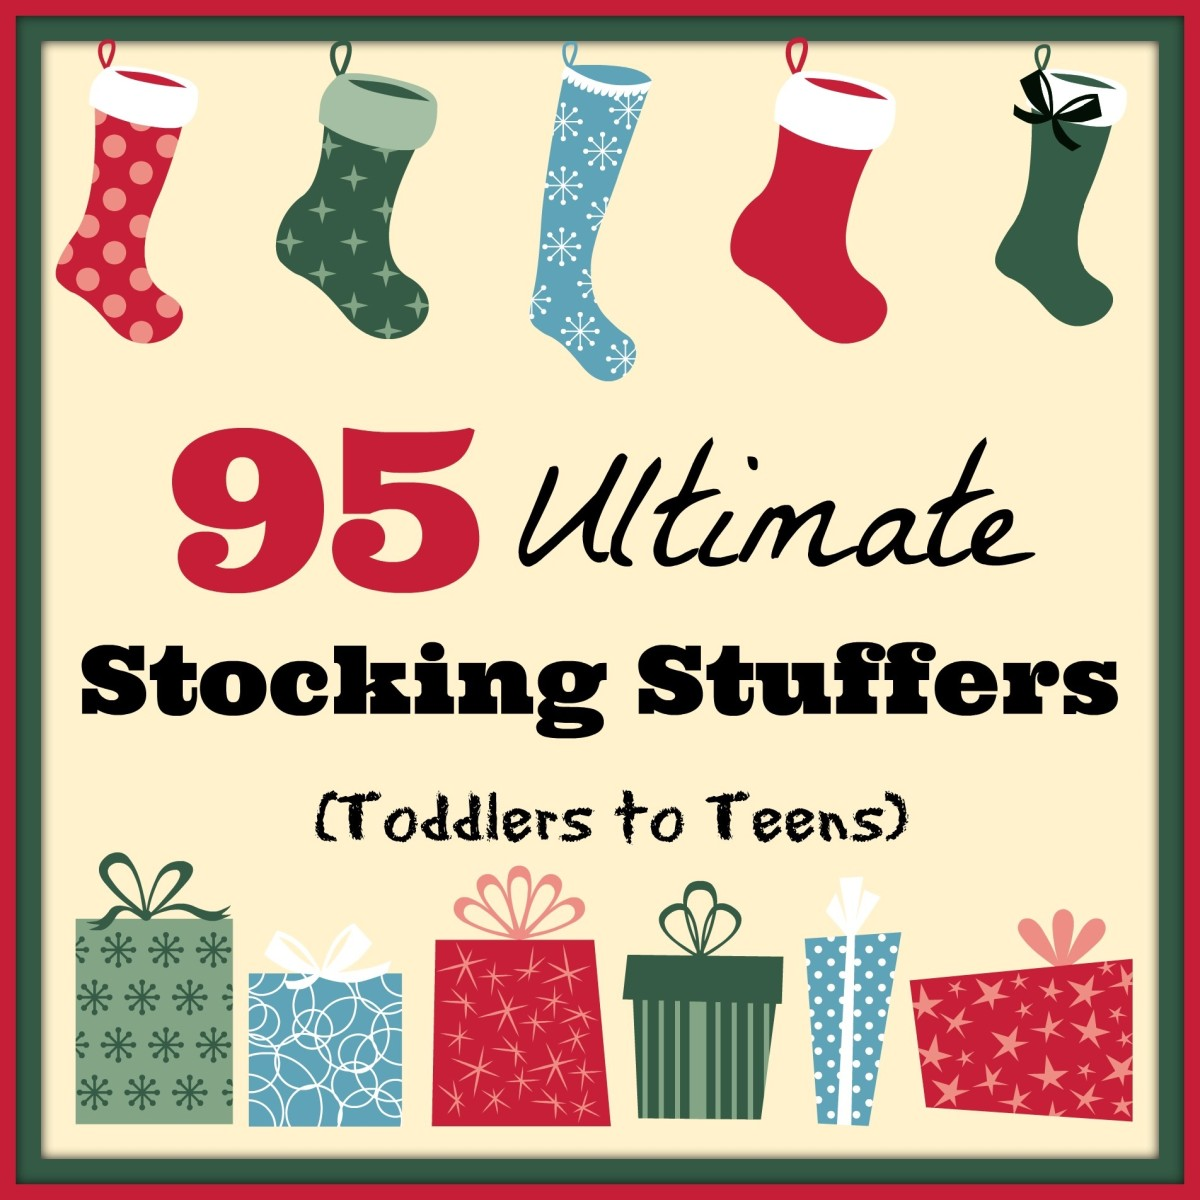 Awesome Stocking Stuffer Ideas for Kids